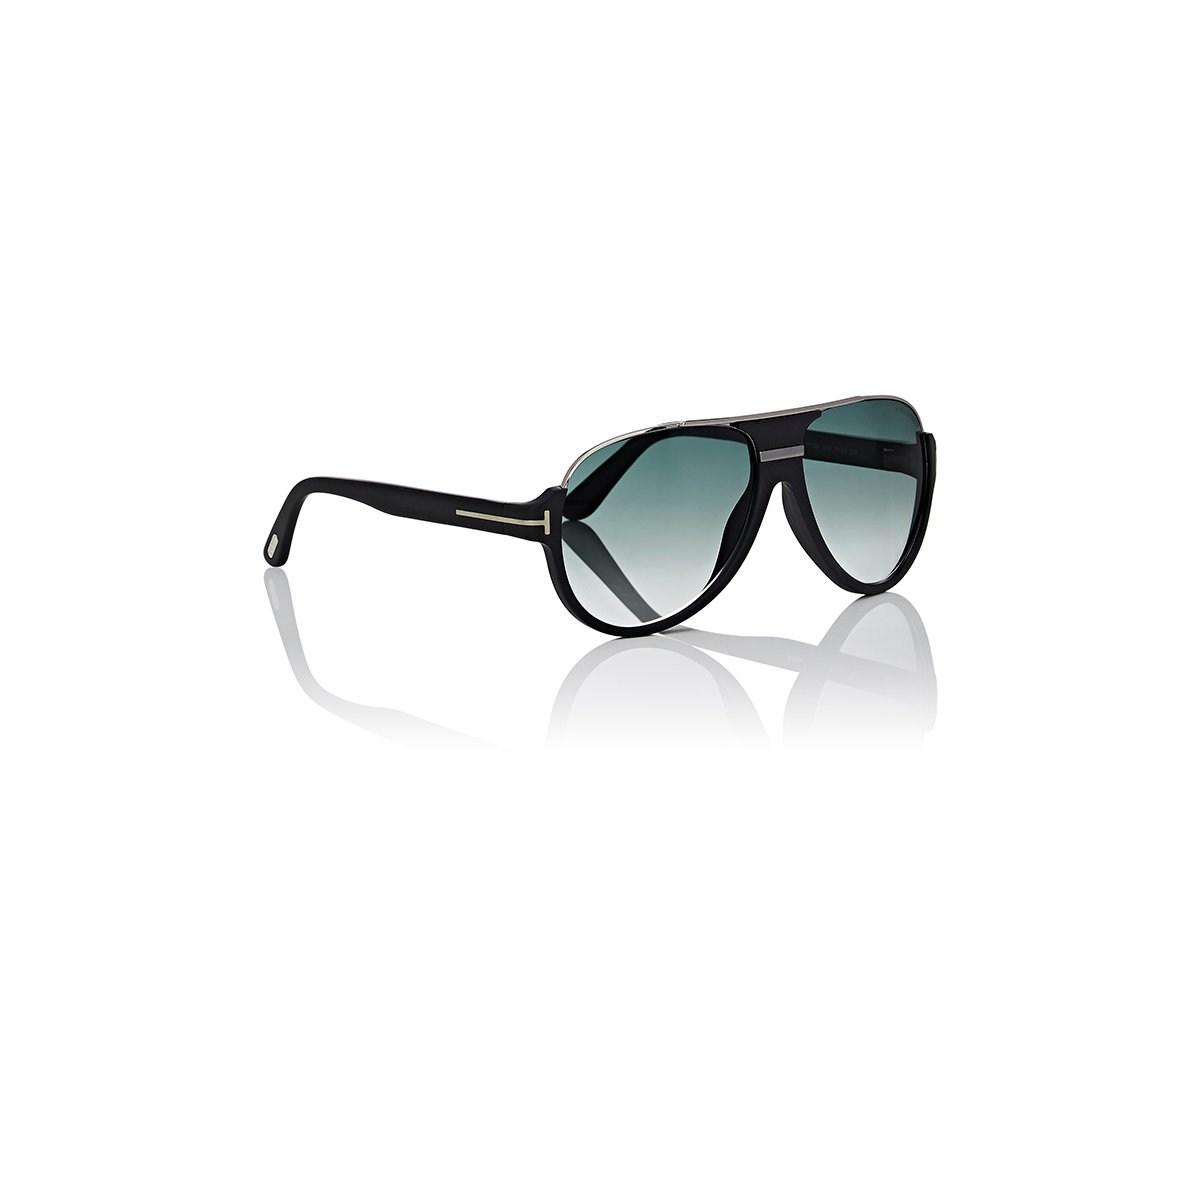 21763c3ed6b Tom Ford - Blue Dimitry Sunglasses for Men - Lyst. View fullscreen